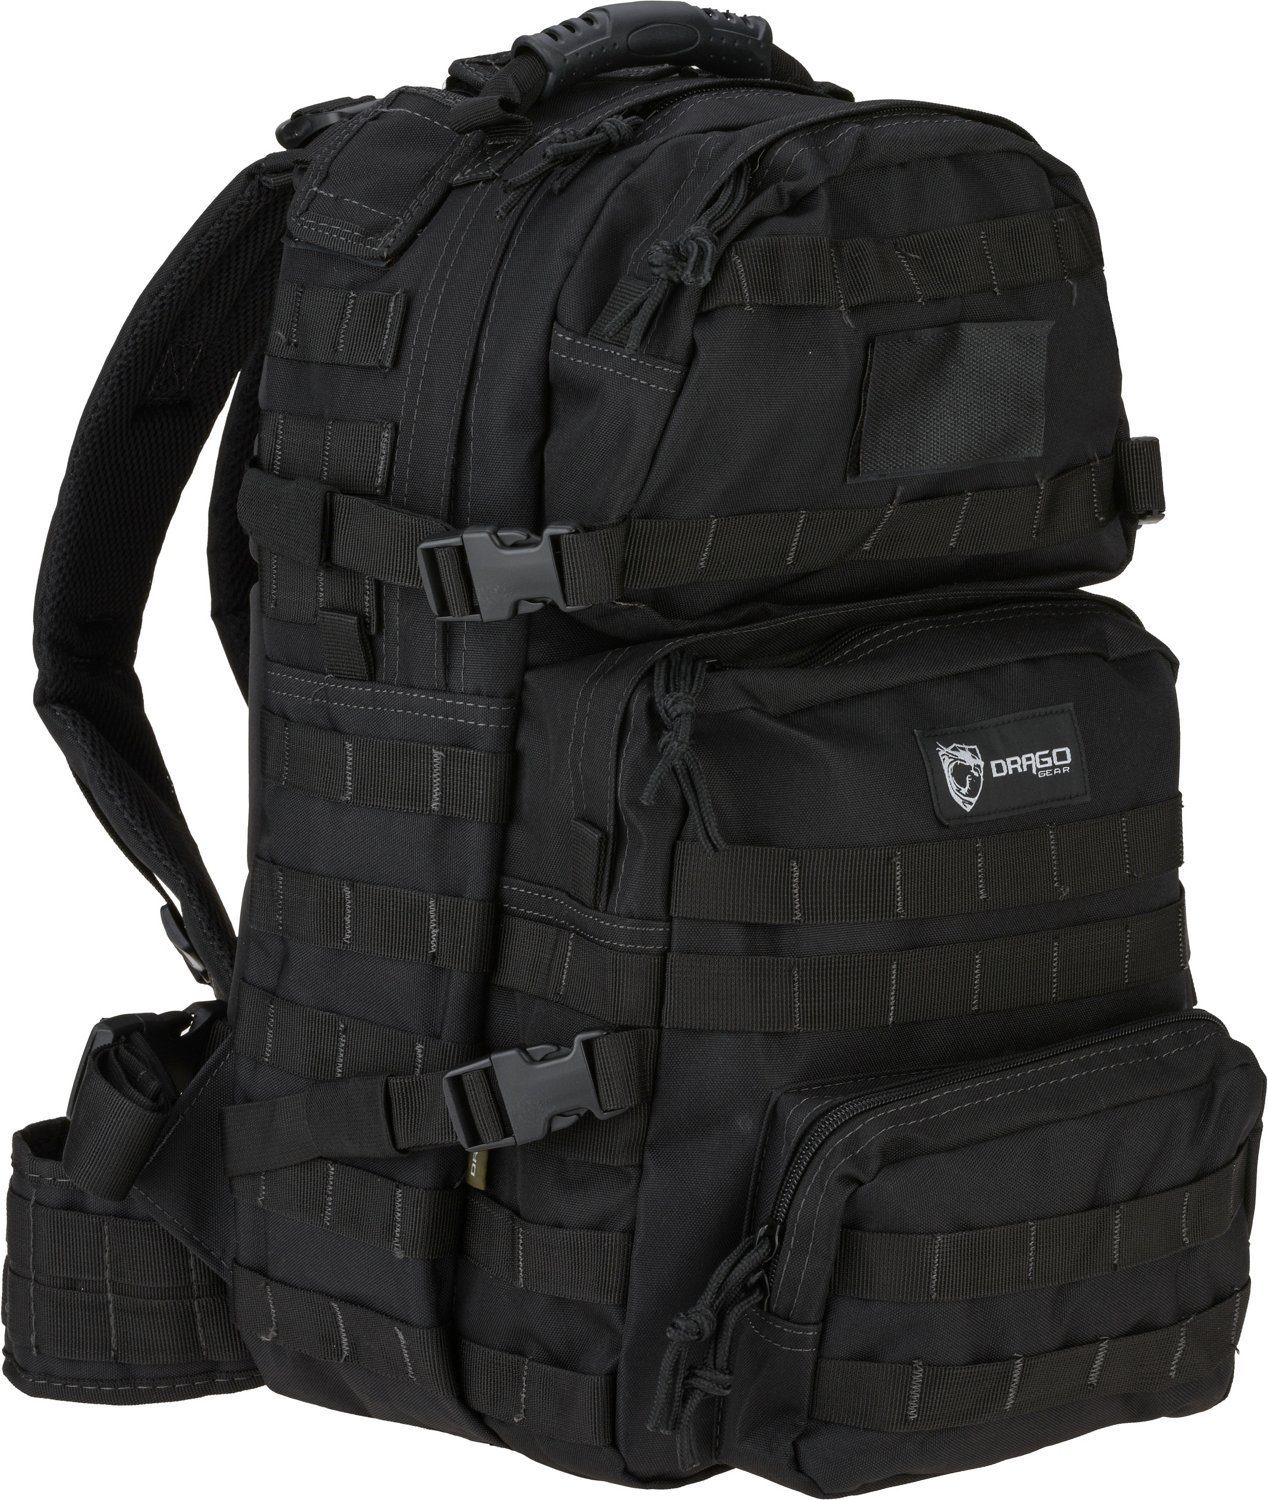 Drago Gear Backpack - view number 2